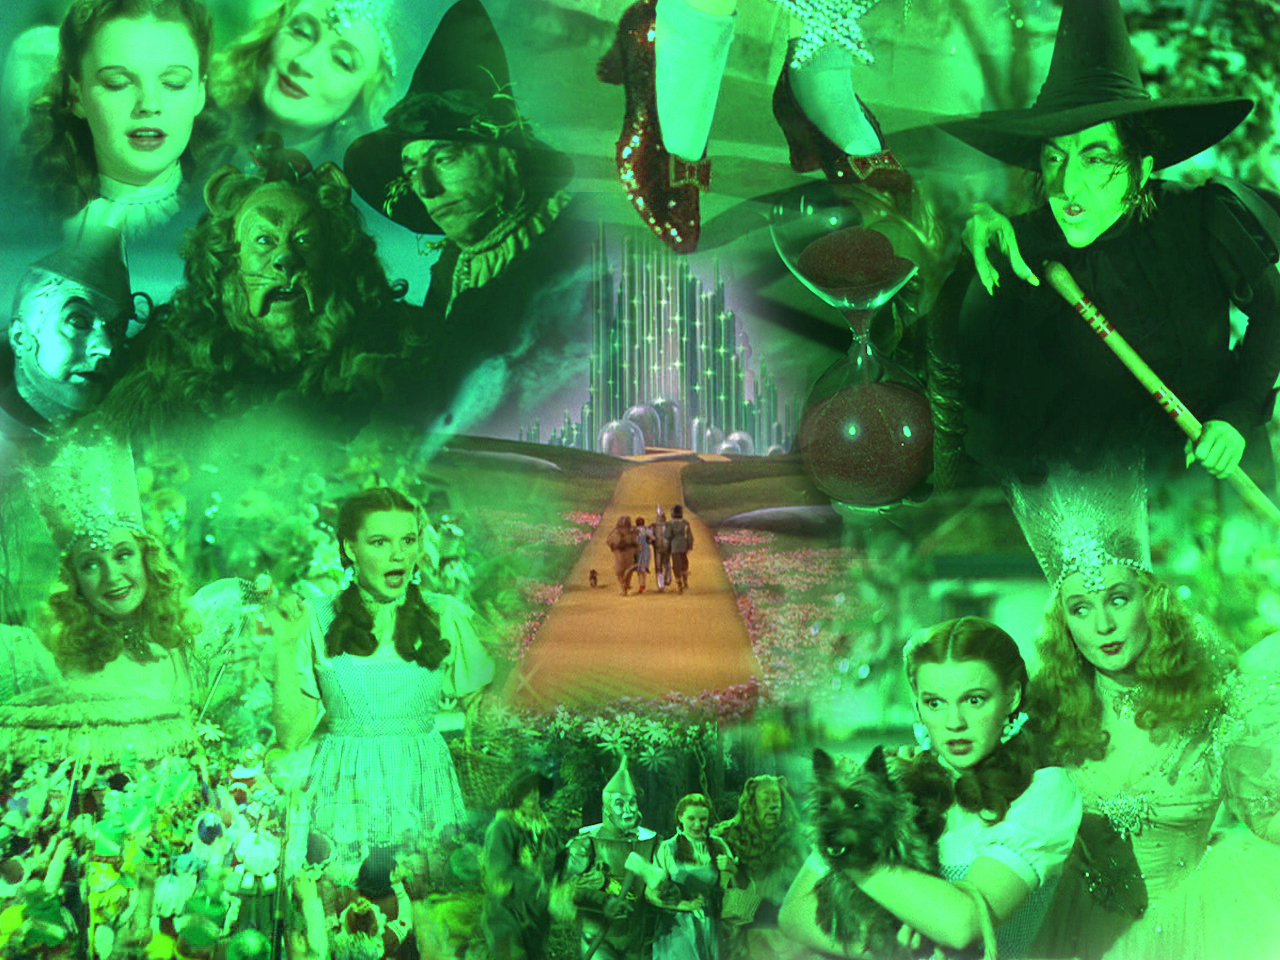 Wizard of oz wallpaper wallpapersafari - The wizard of oz hd ...